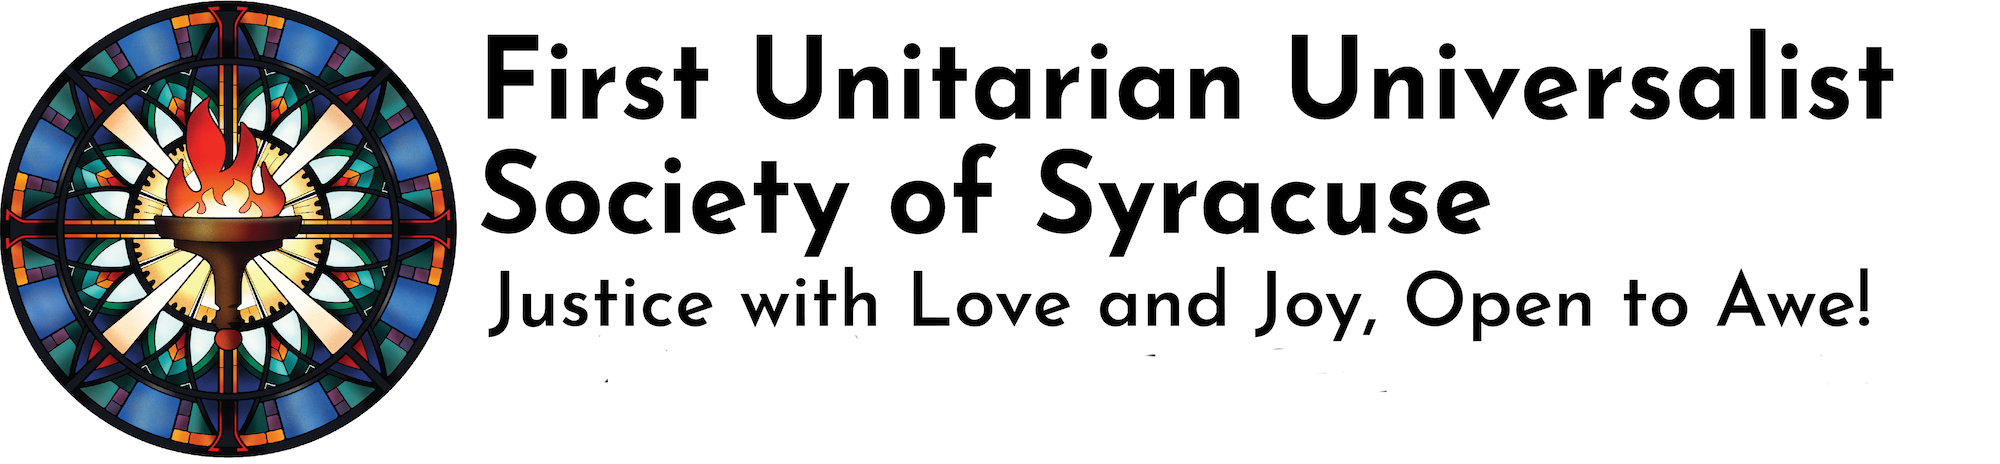 First Unitarian Universalist Society of Syracuse